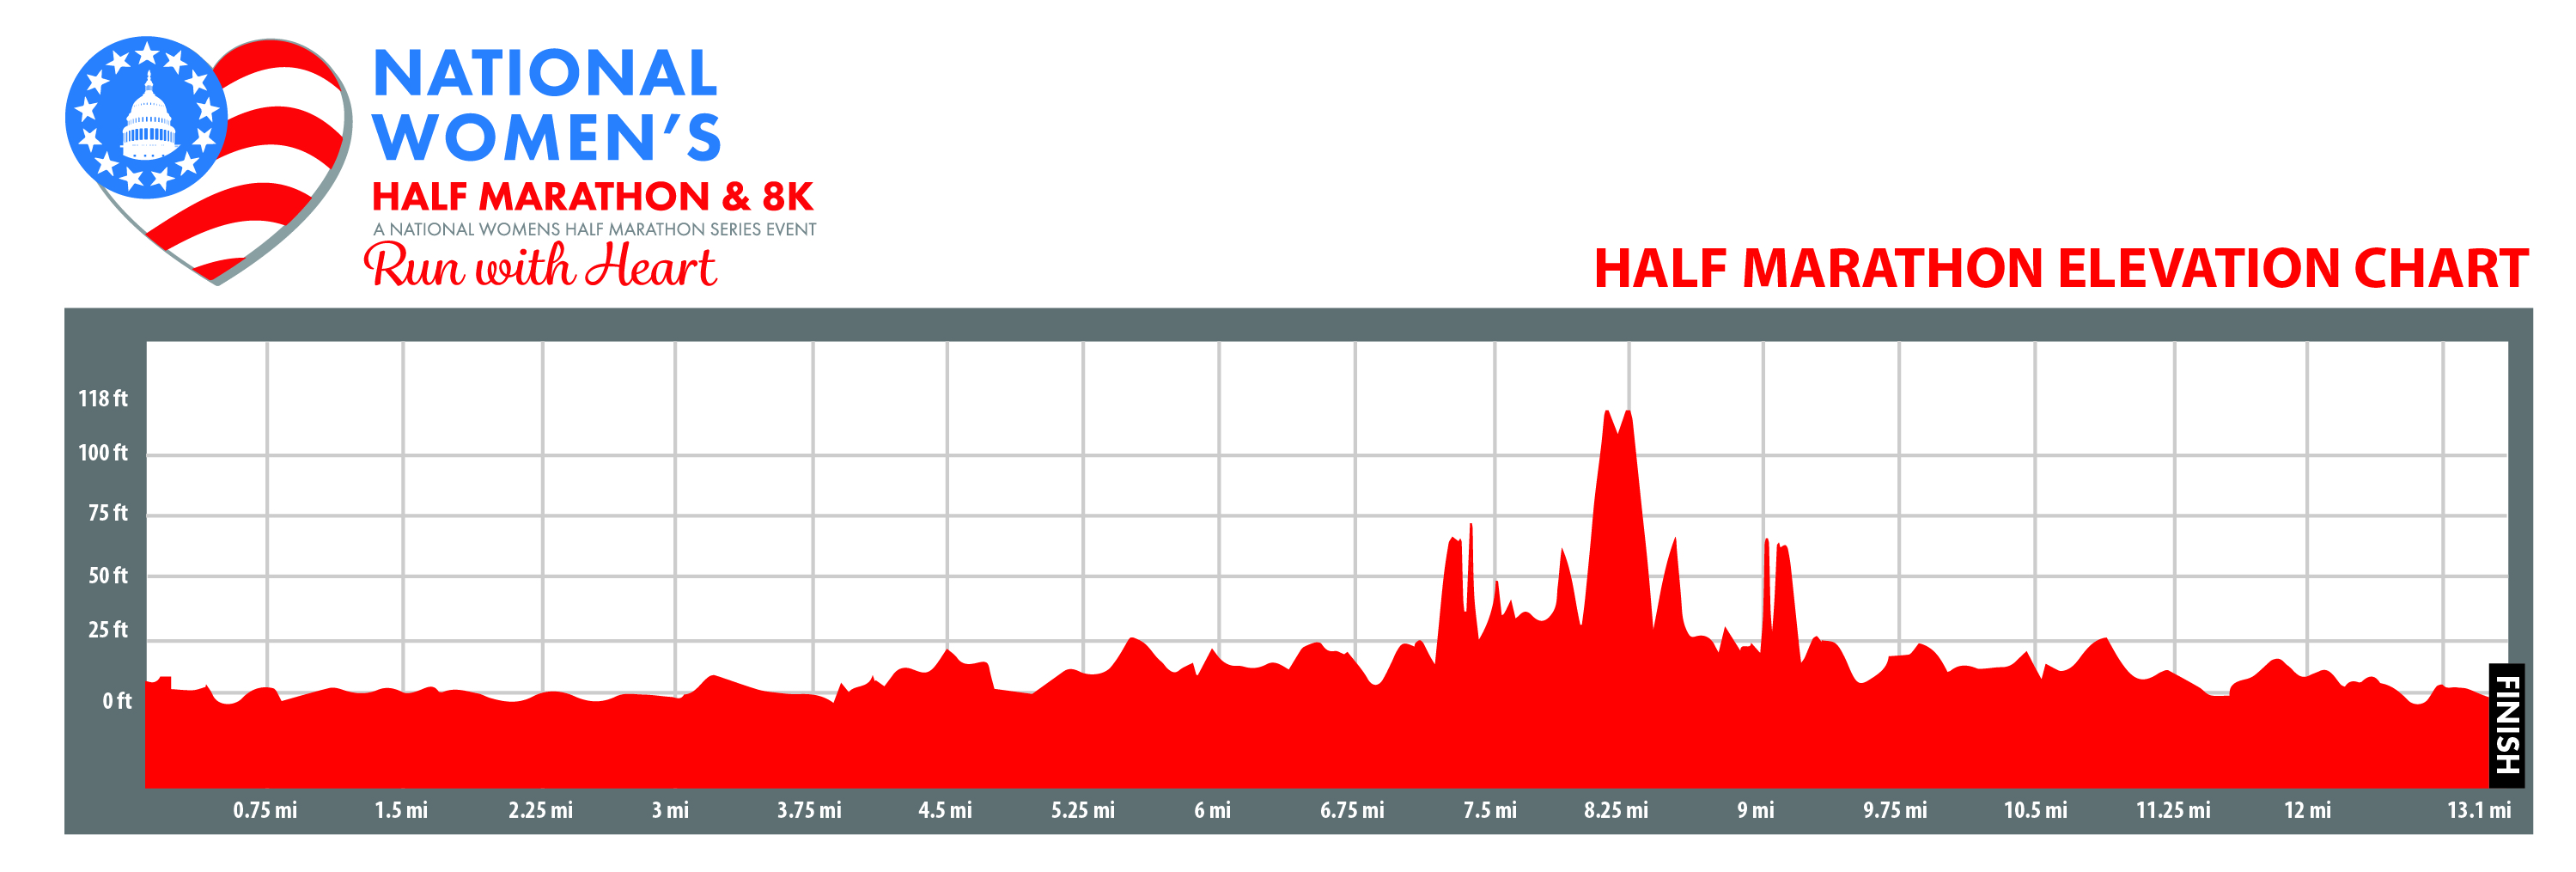 national womens half marathon elevation